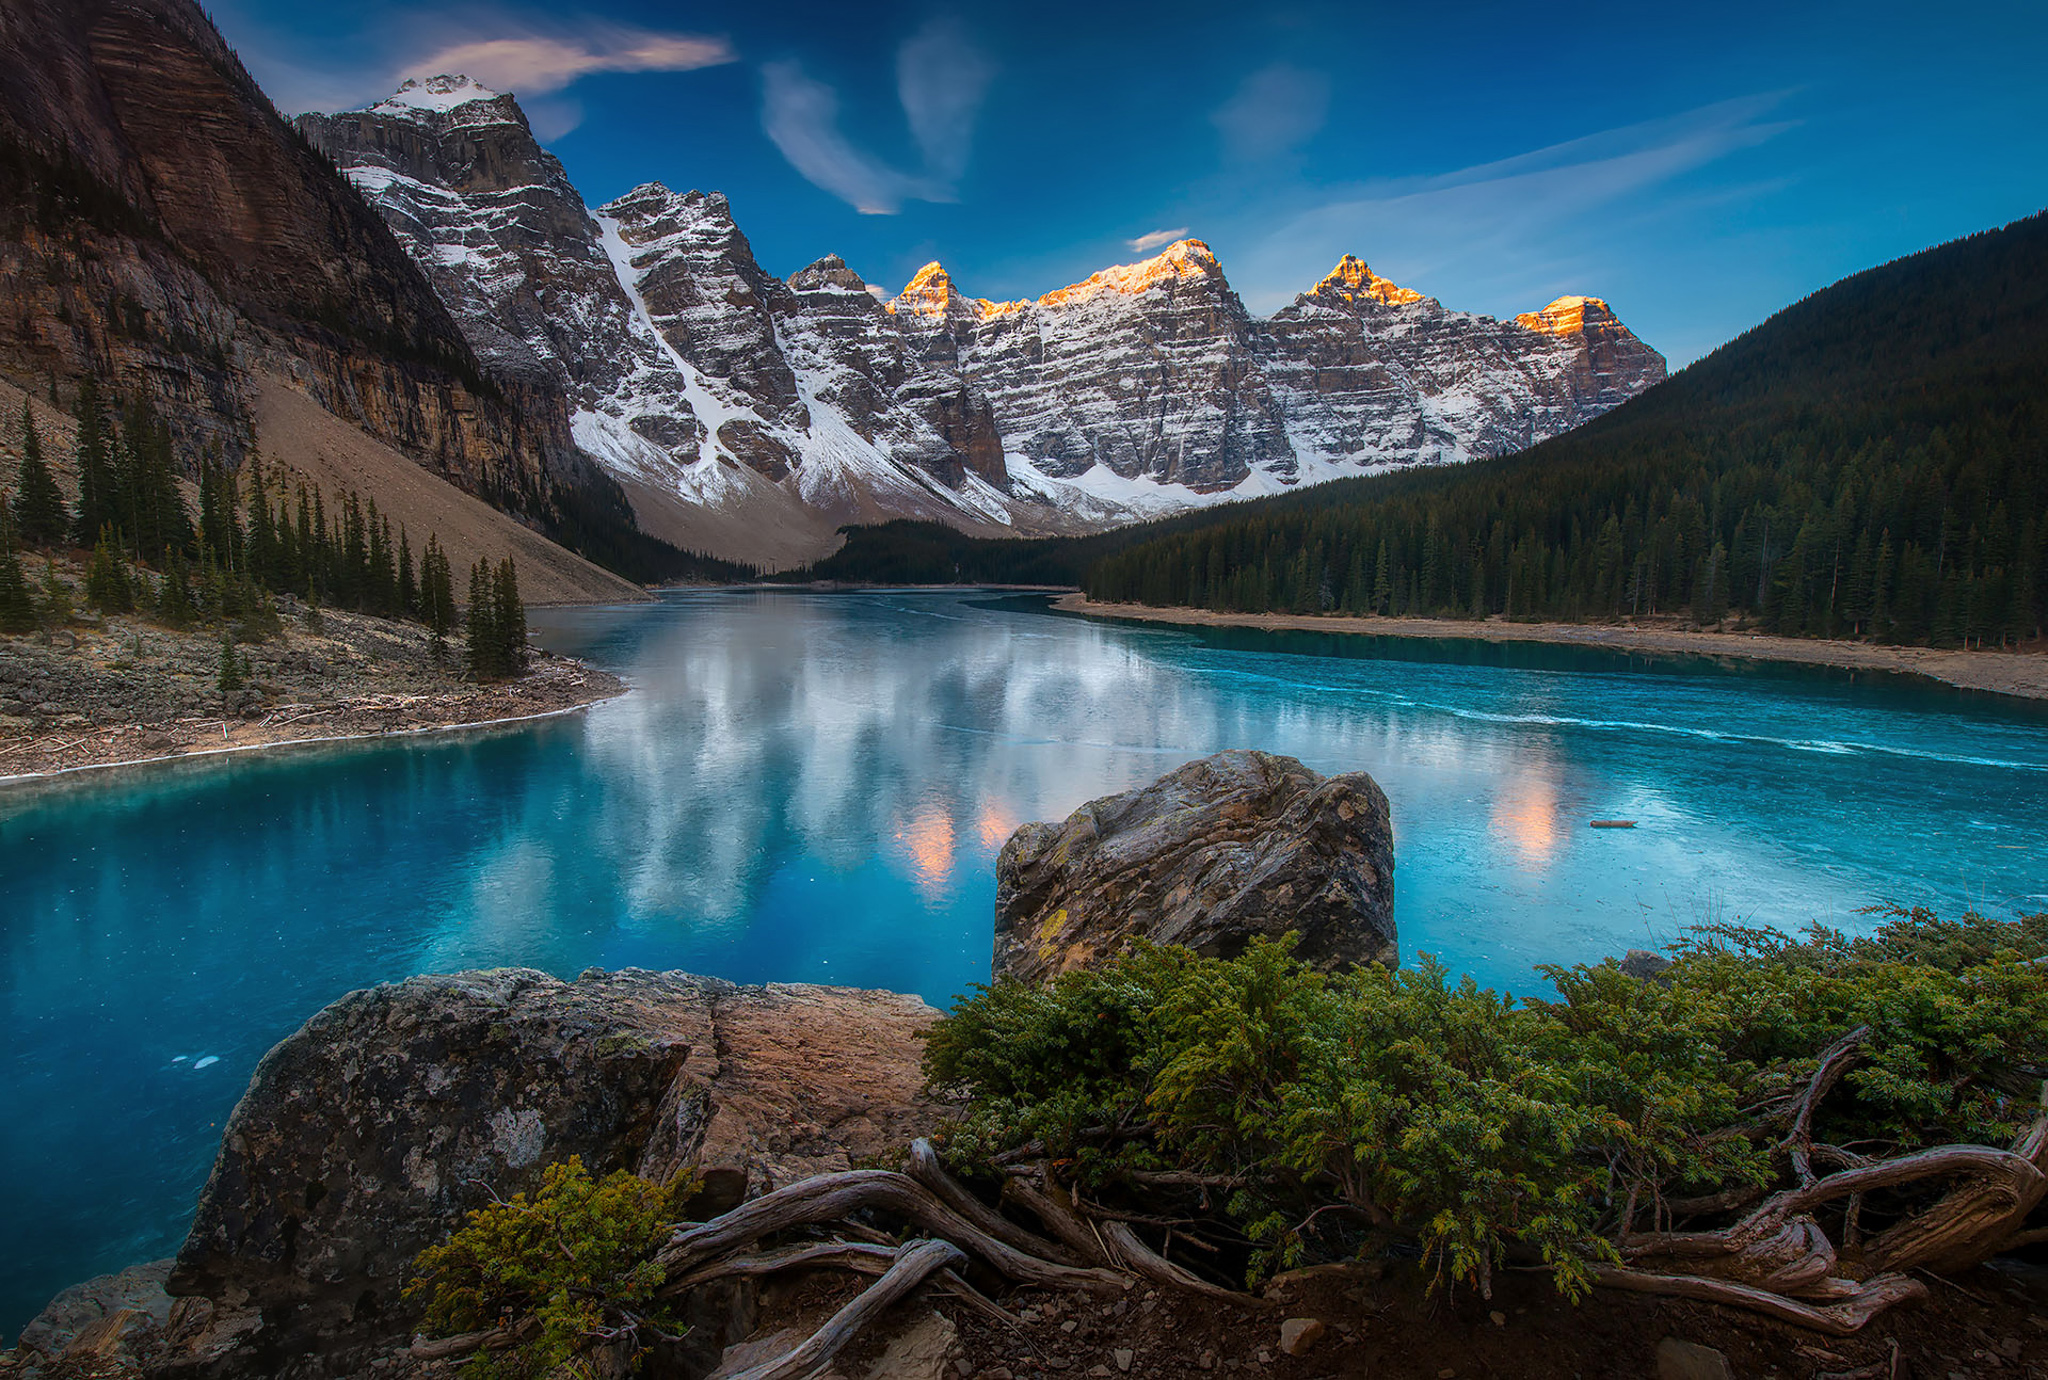 The Awakening - Moraine Lake Alberta Canada